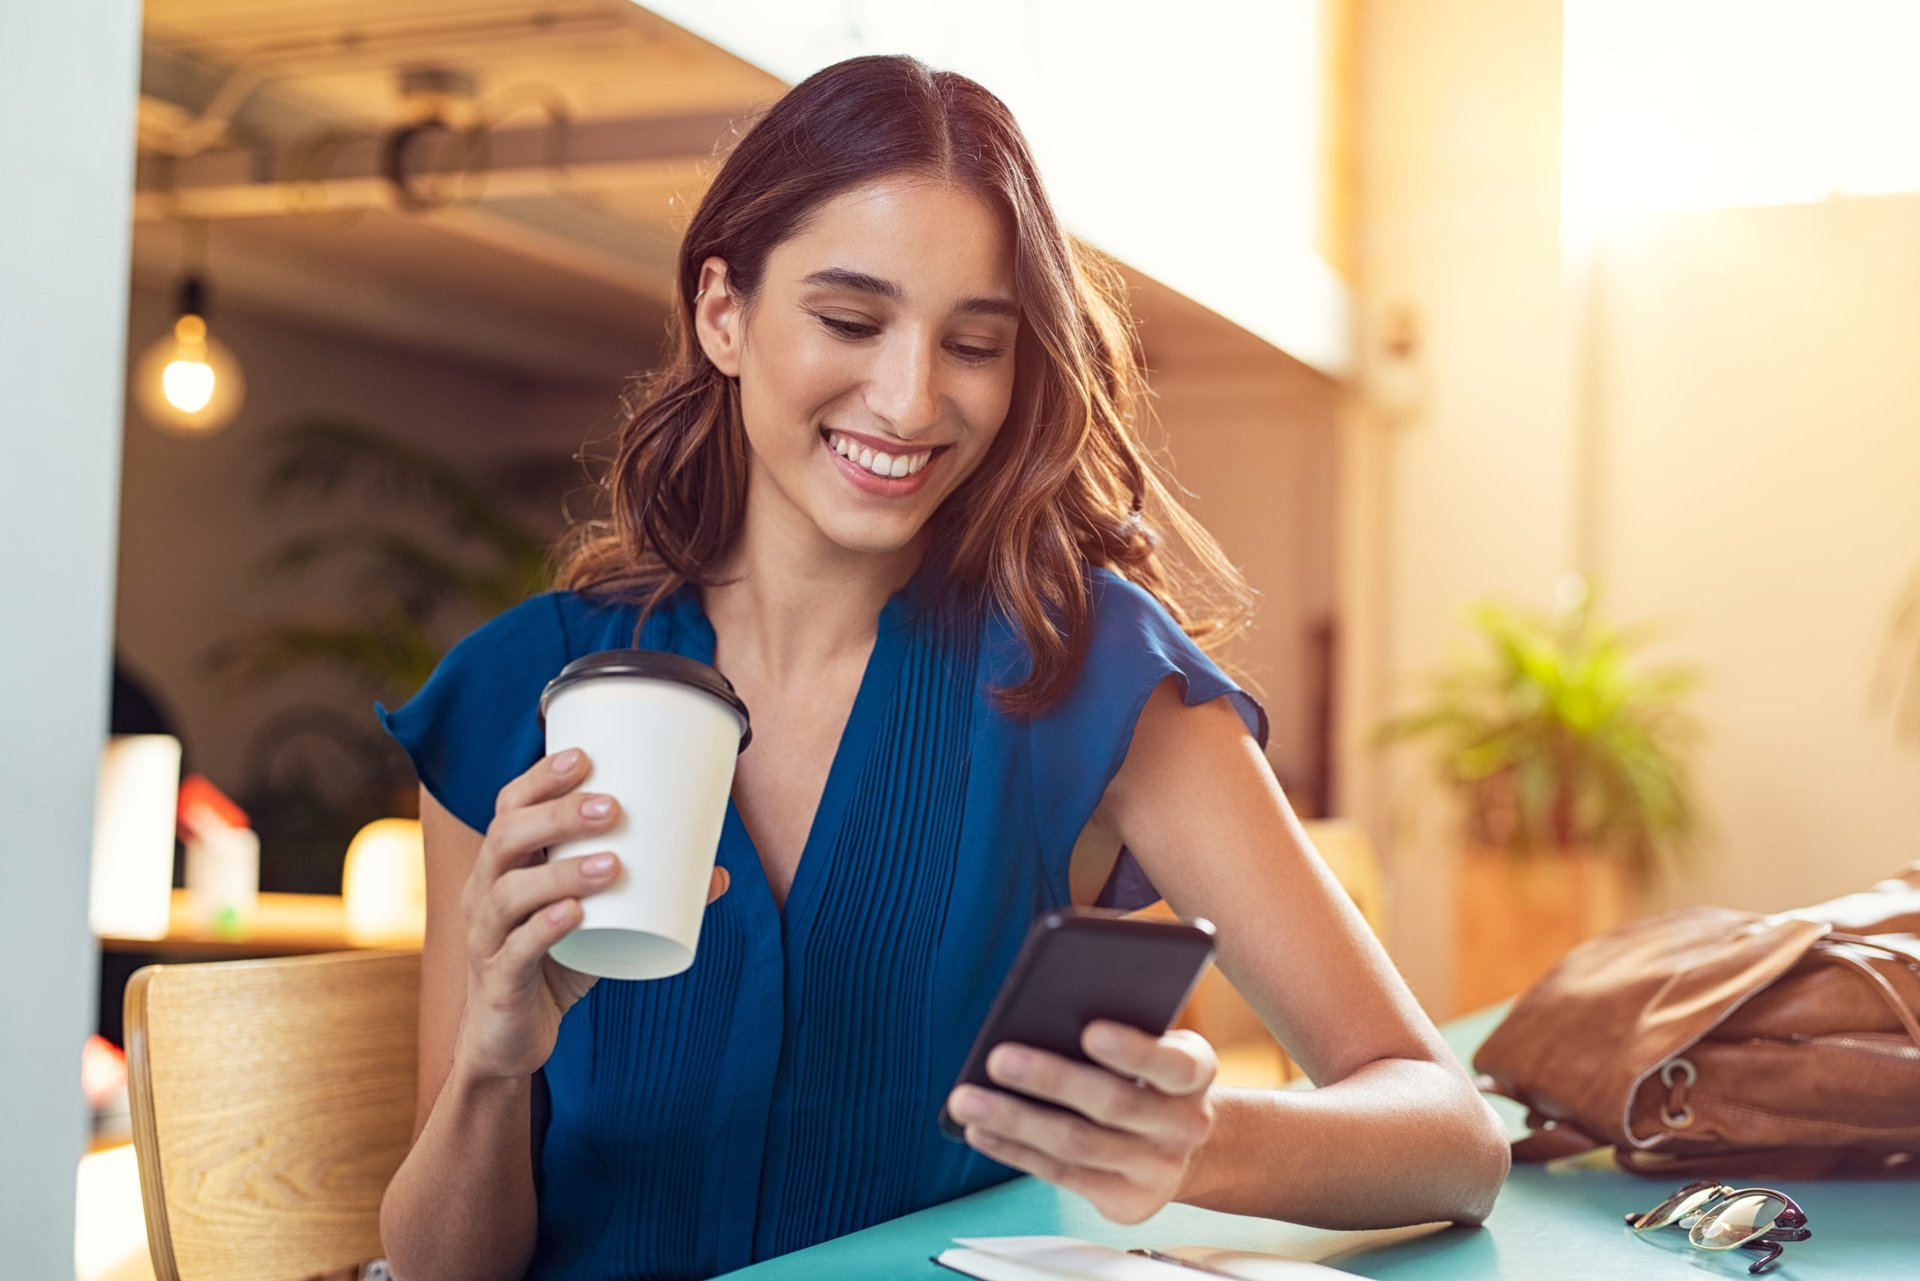 Woman happy with her phone and a coffee